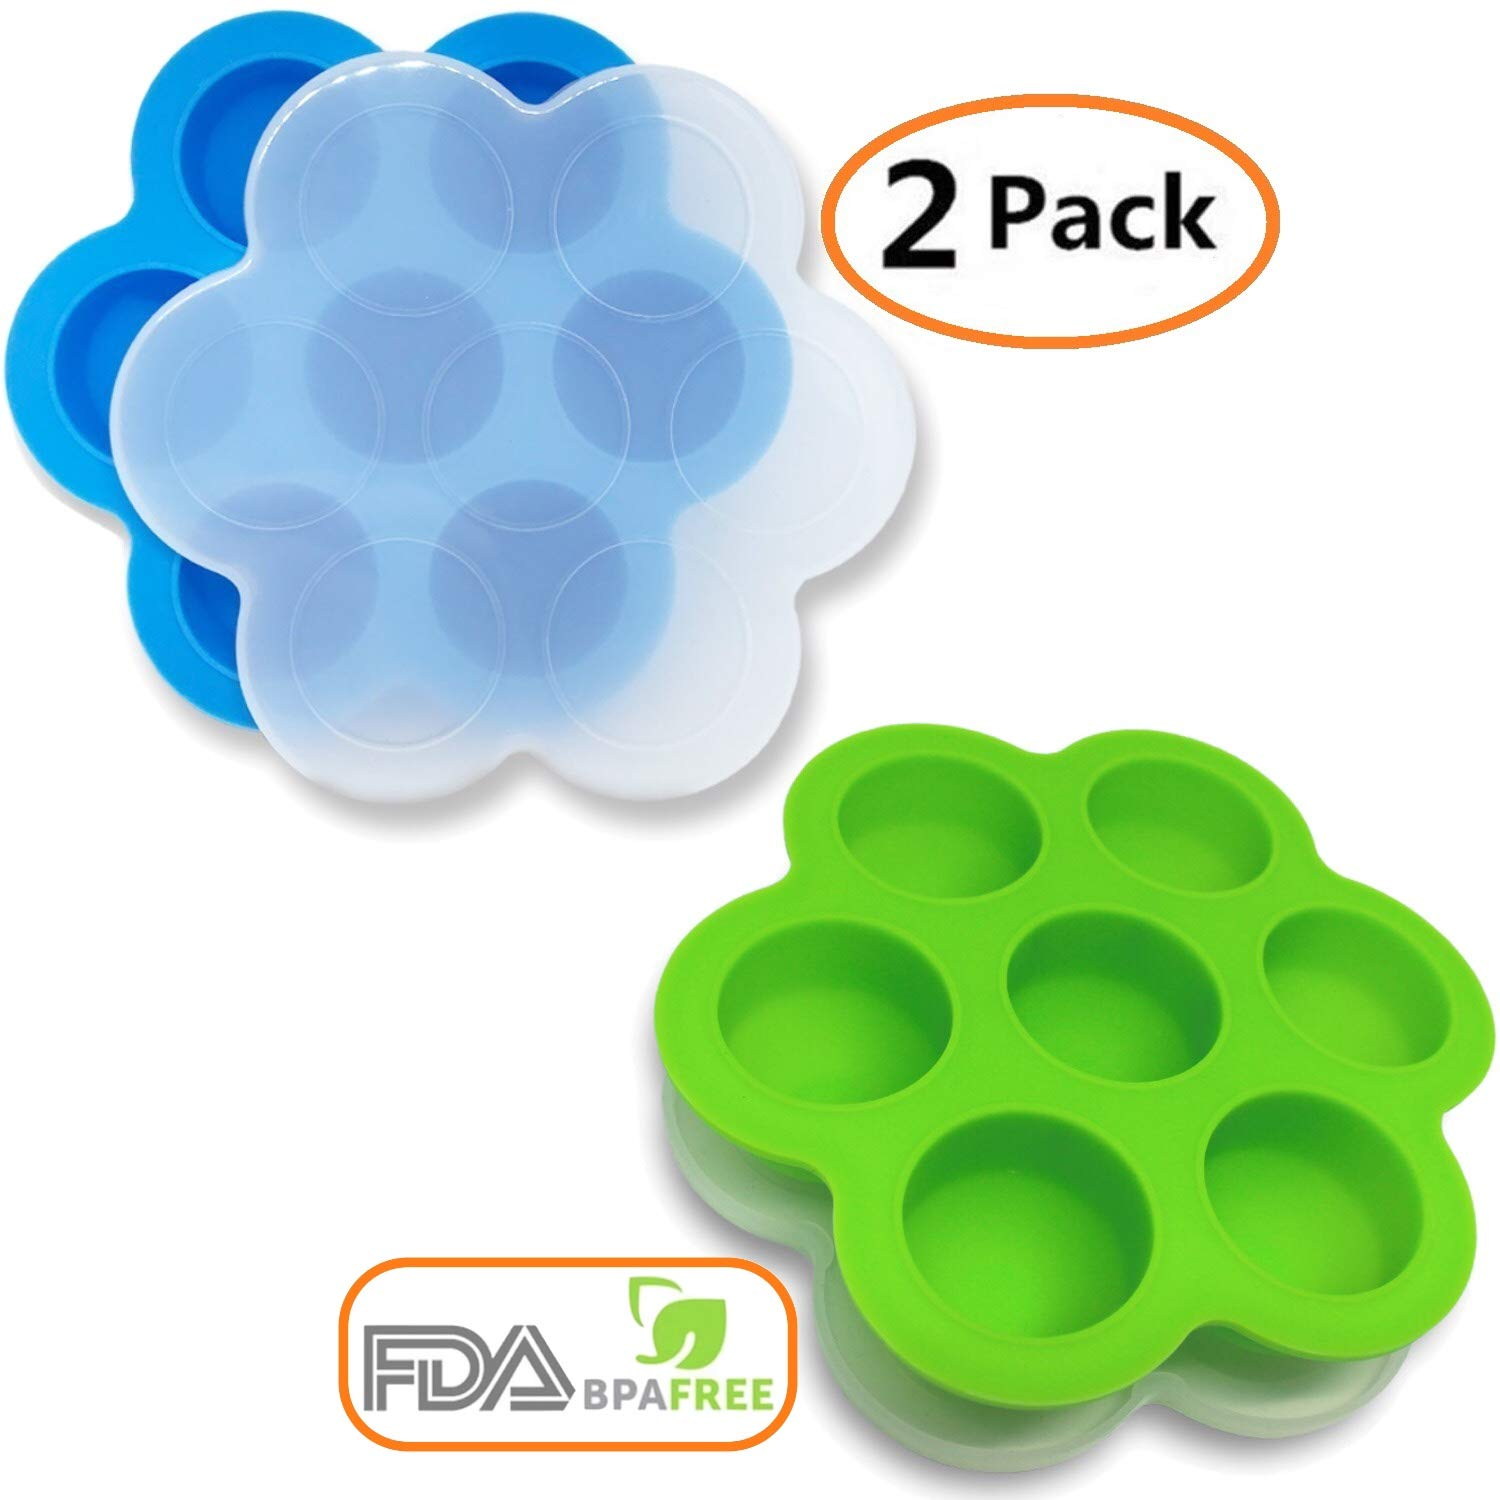 OGGO Silicone Egg Bites Molds For Instant Pot Accessories - Fit Instant Pot 5,6,8 qt Pressure Cooker - Baby Food Freezer Tray with Lid - Reusable Storage Container - 2 Pack by OGGO